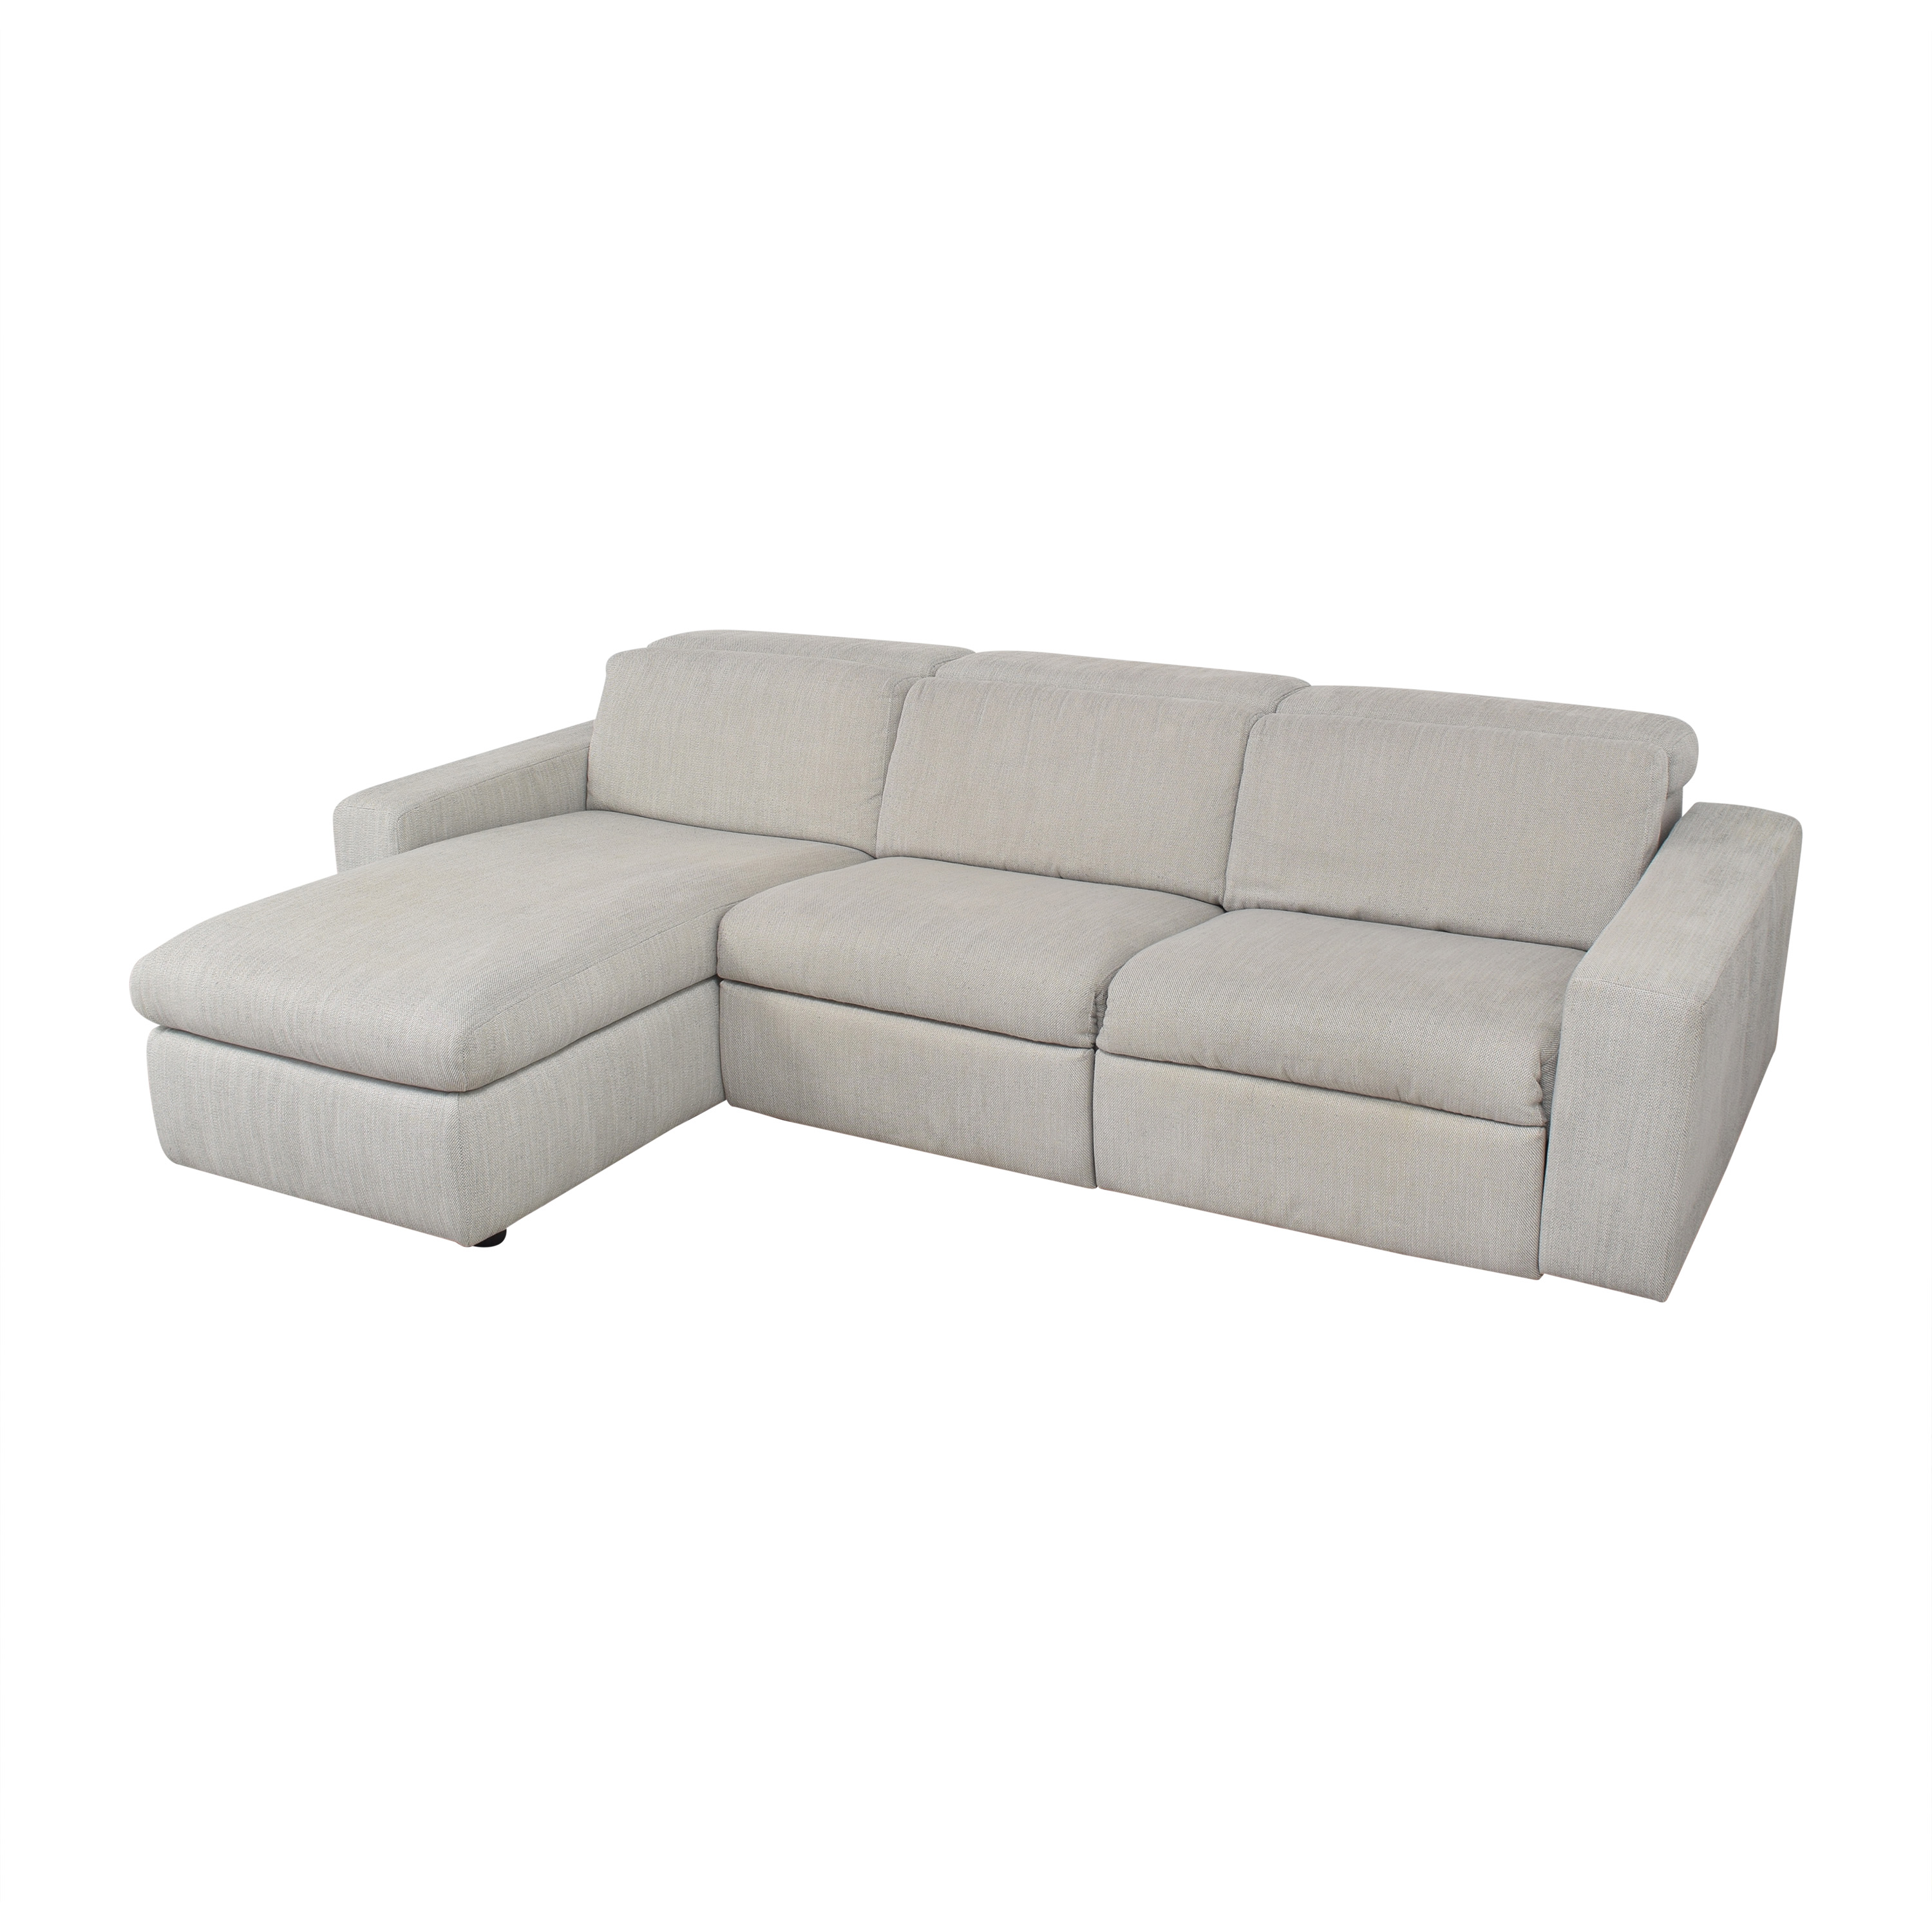 West Elm West Elm Enzo Reclining Chaise Sectional with Storage Sectionals